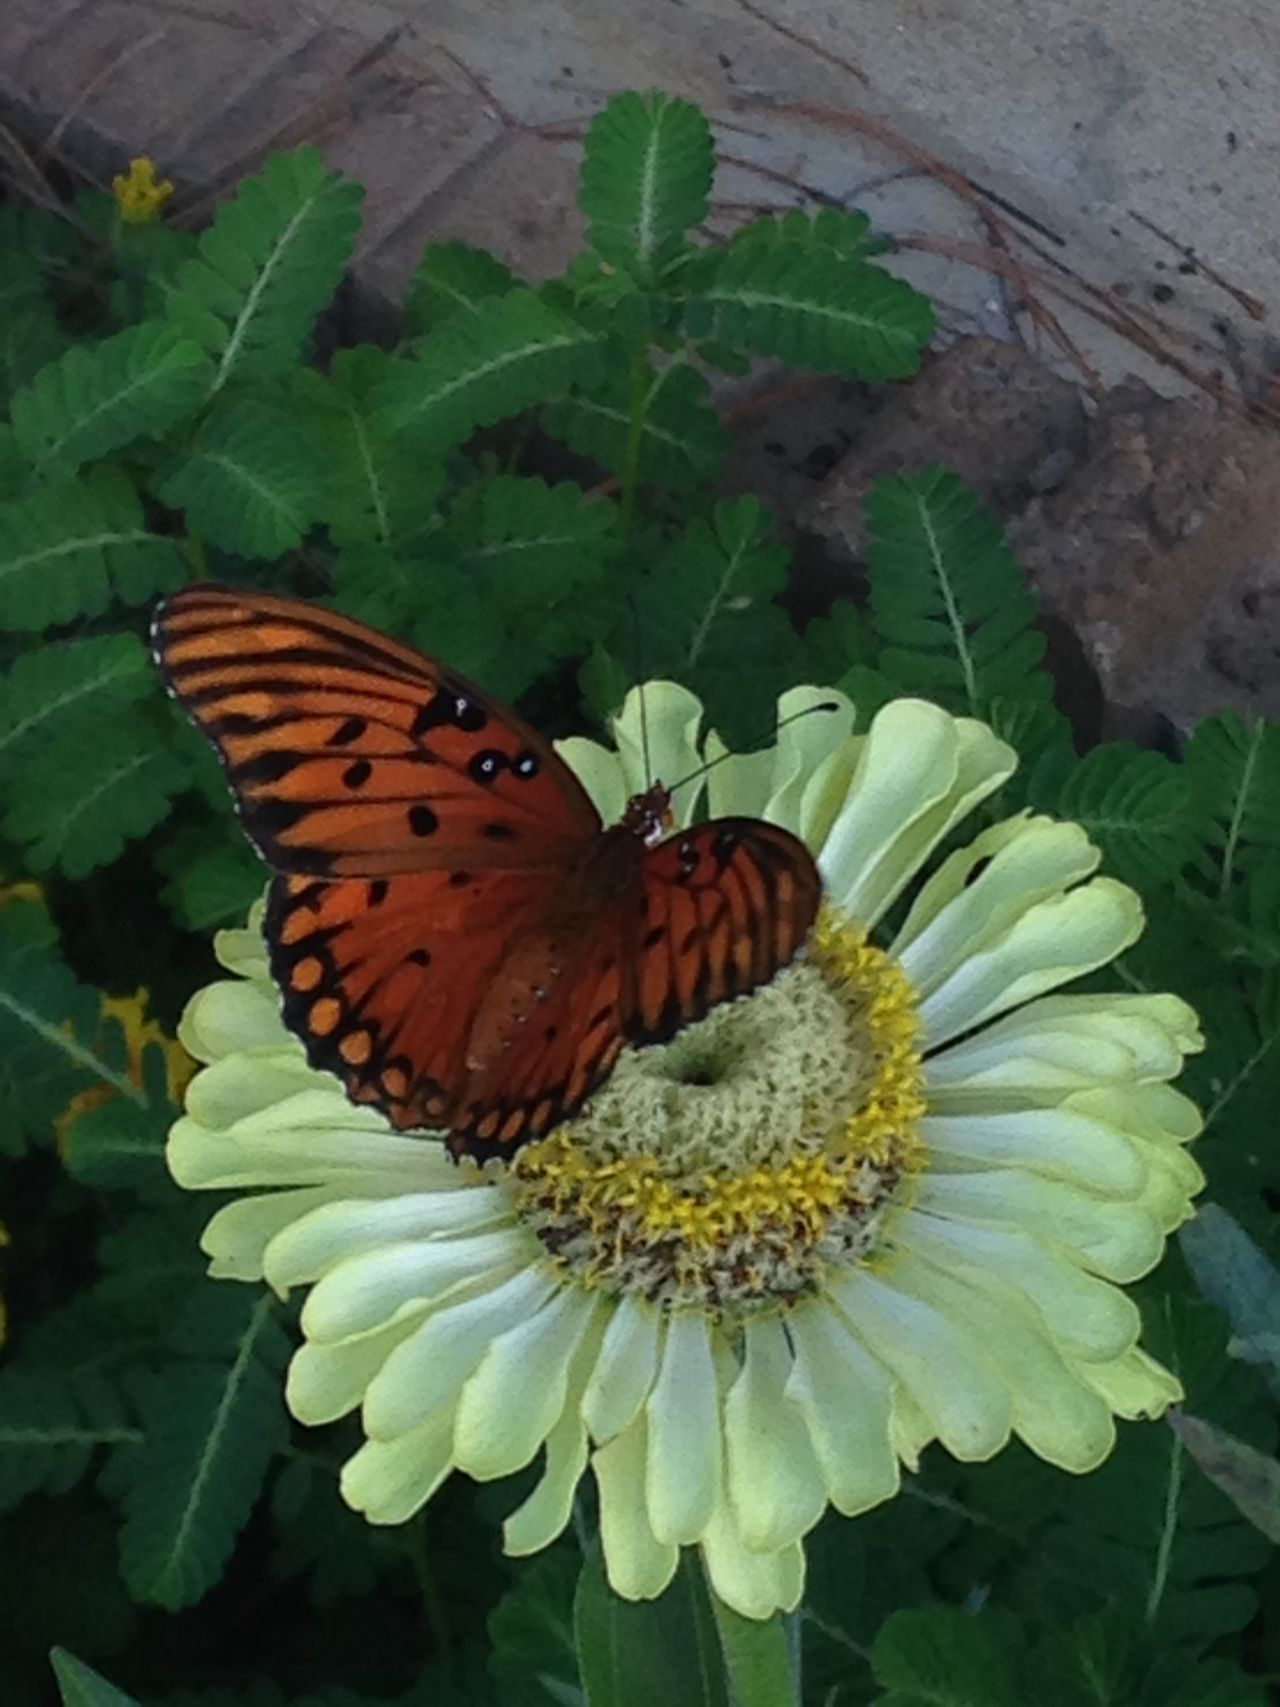 Happiness Butterflies Flower Garden Green Envy Zinnia Mother Nature Feeding Mother Nature My Favorite Thing No Editing Needed Spring Into Fall Springtime EyeEmNewHere